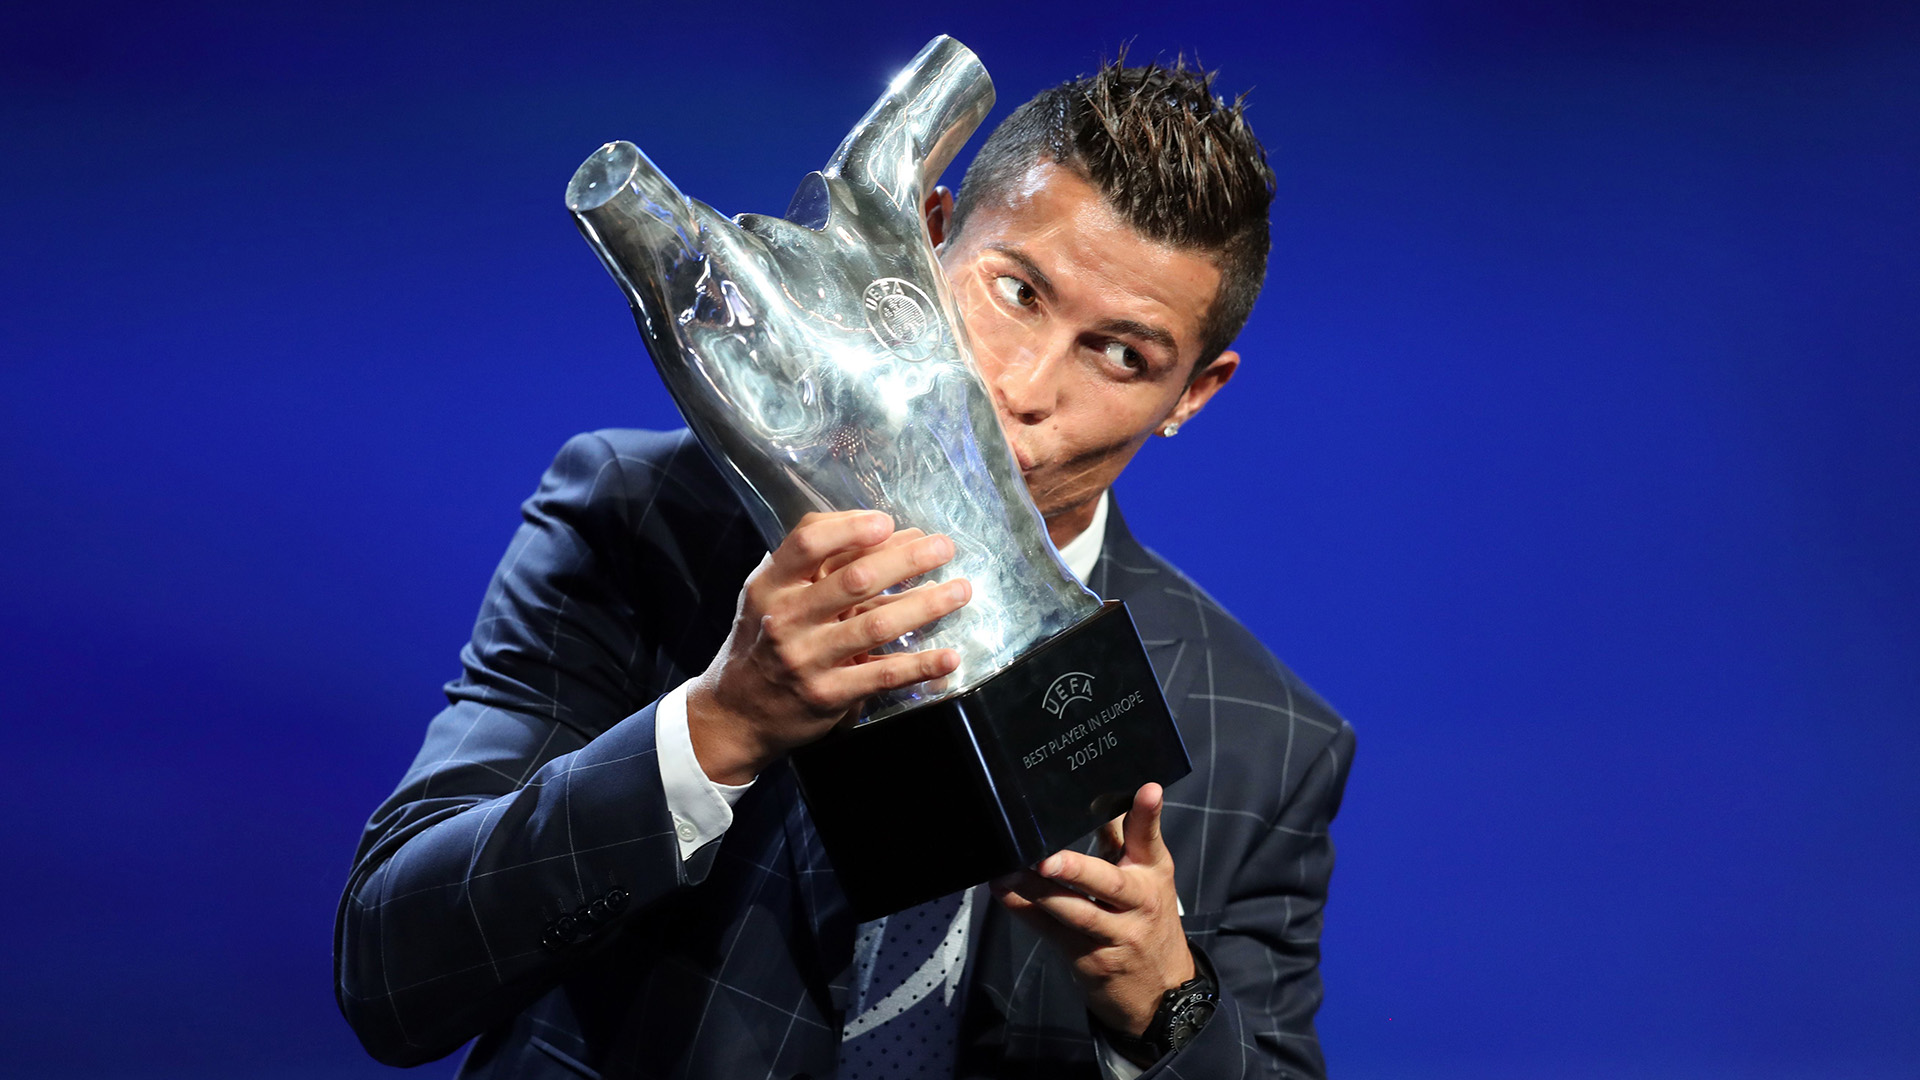 Ronaldo Reveals His Euro 2016 Player Of The Tournament